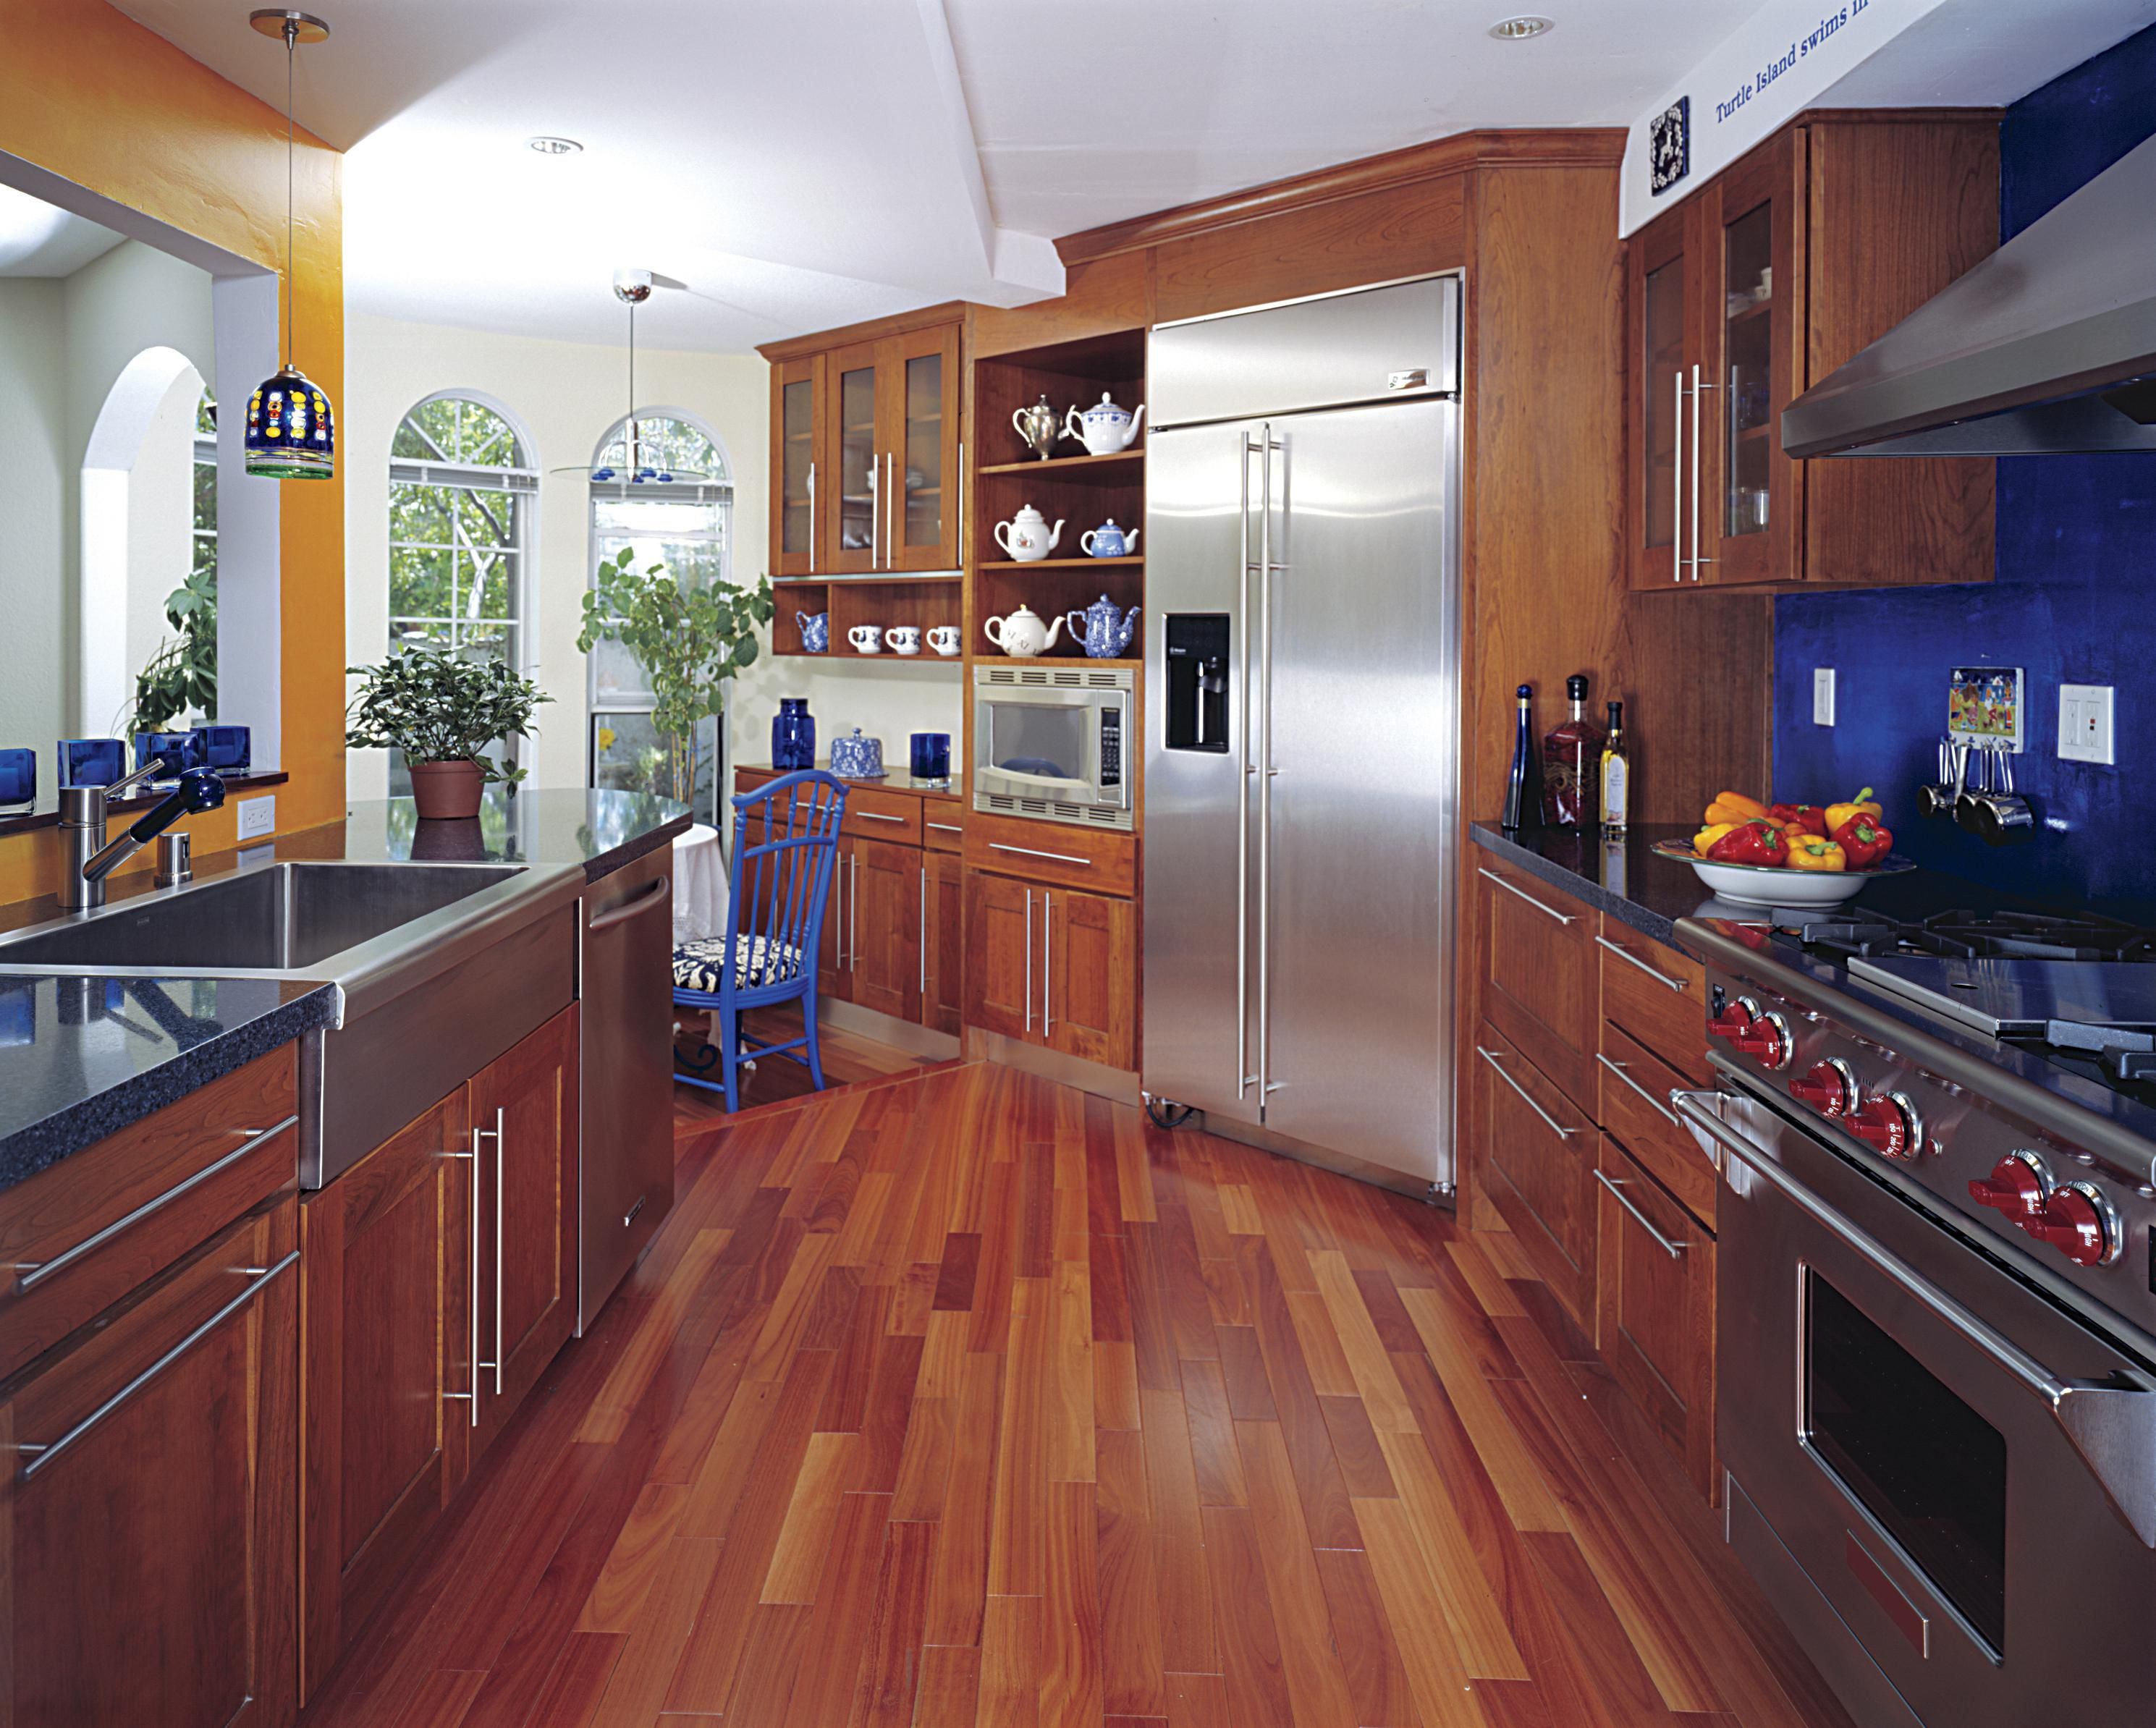 Hardwood Floor Varnish toxic to Breathe Of Hardwood Floor In A Kitchen is This Allowed Inside 186828472 56a49f3a5f9b58b7d0d7e142